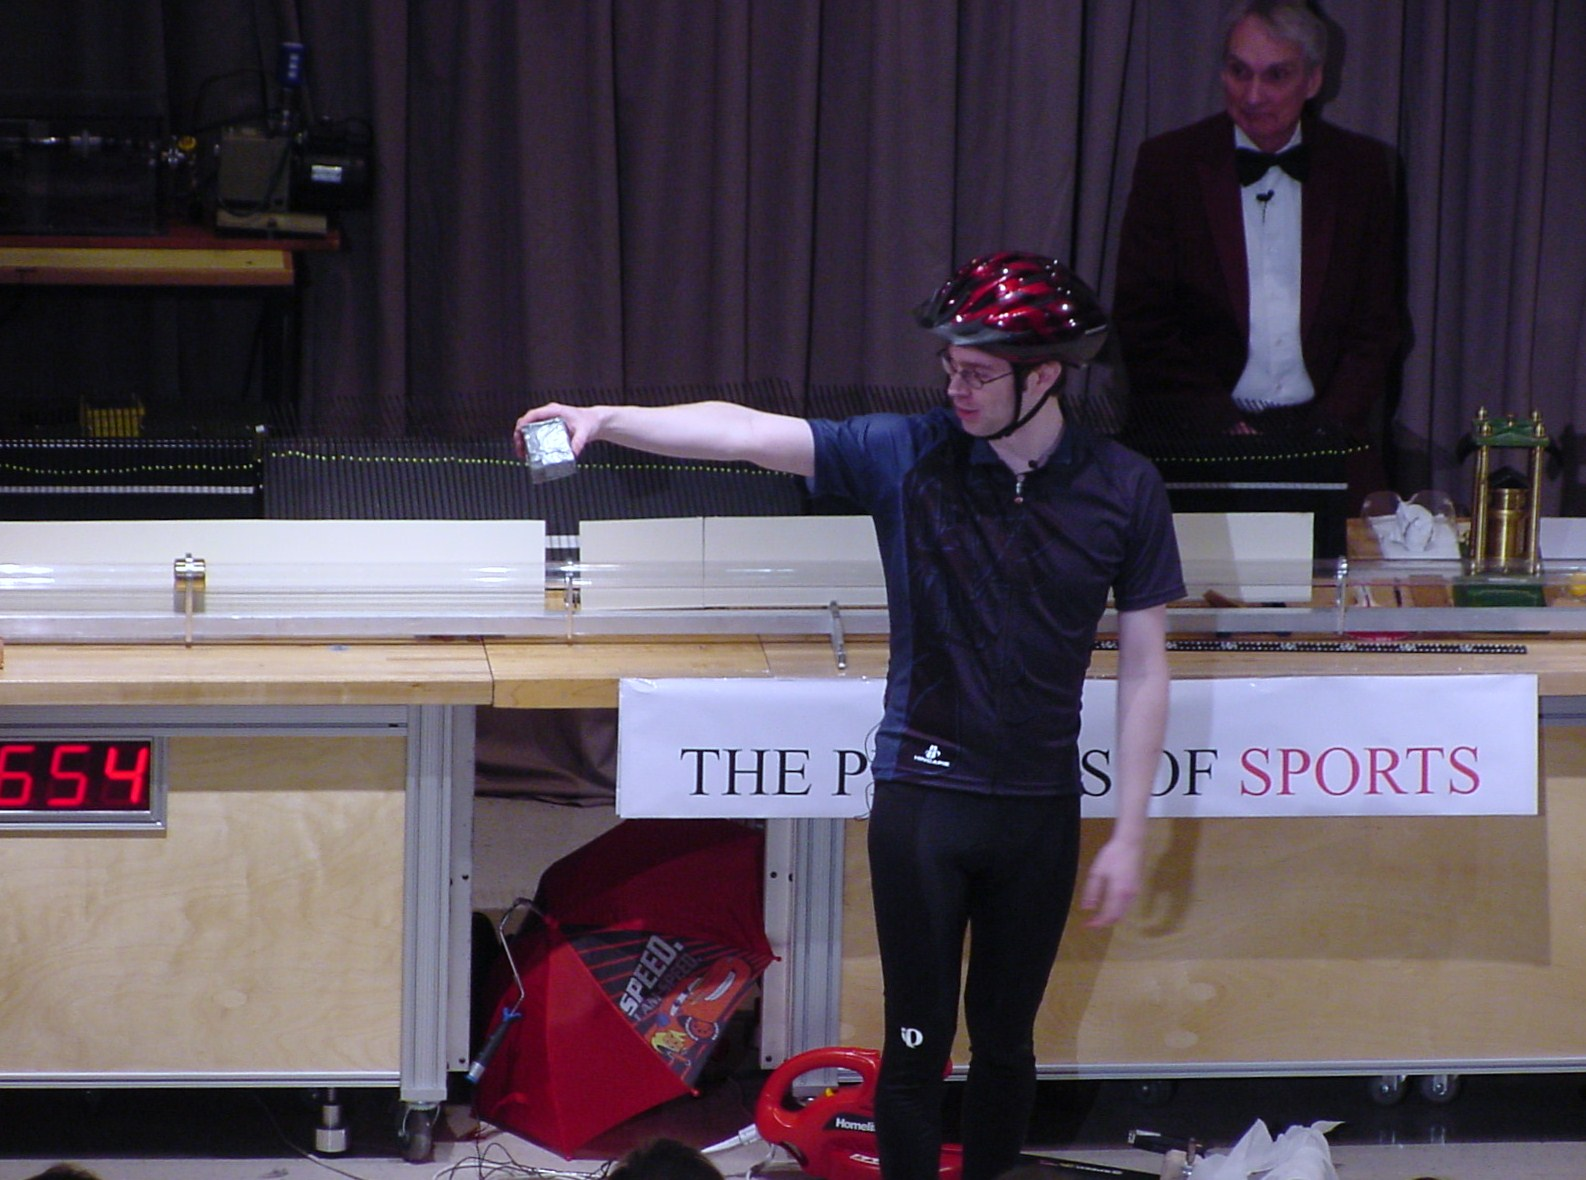 Man on stage doing an experiment